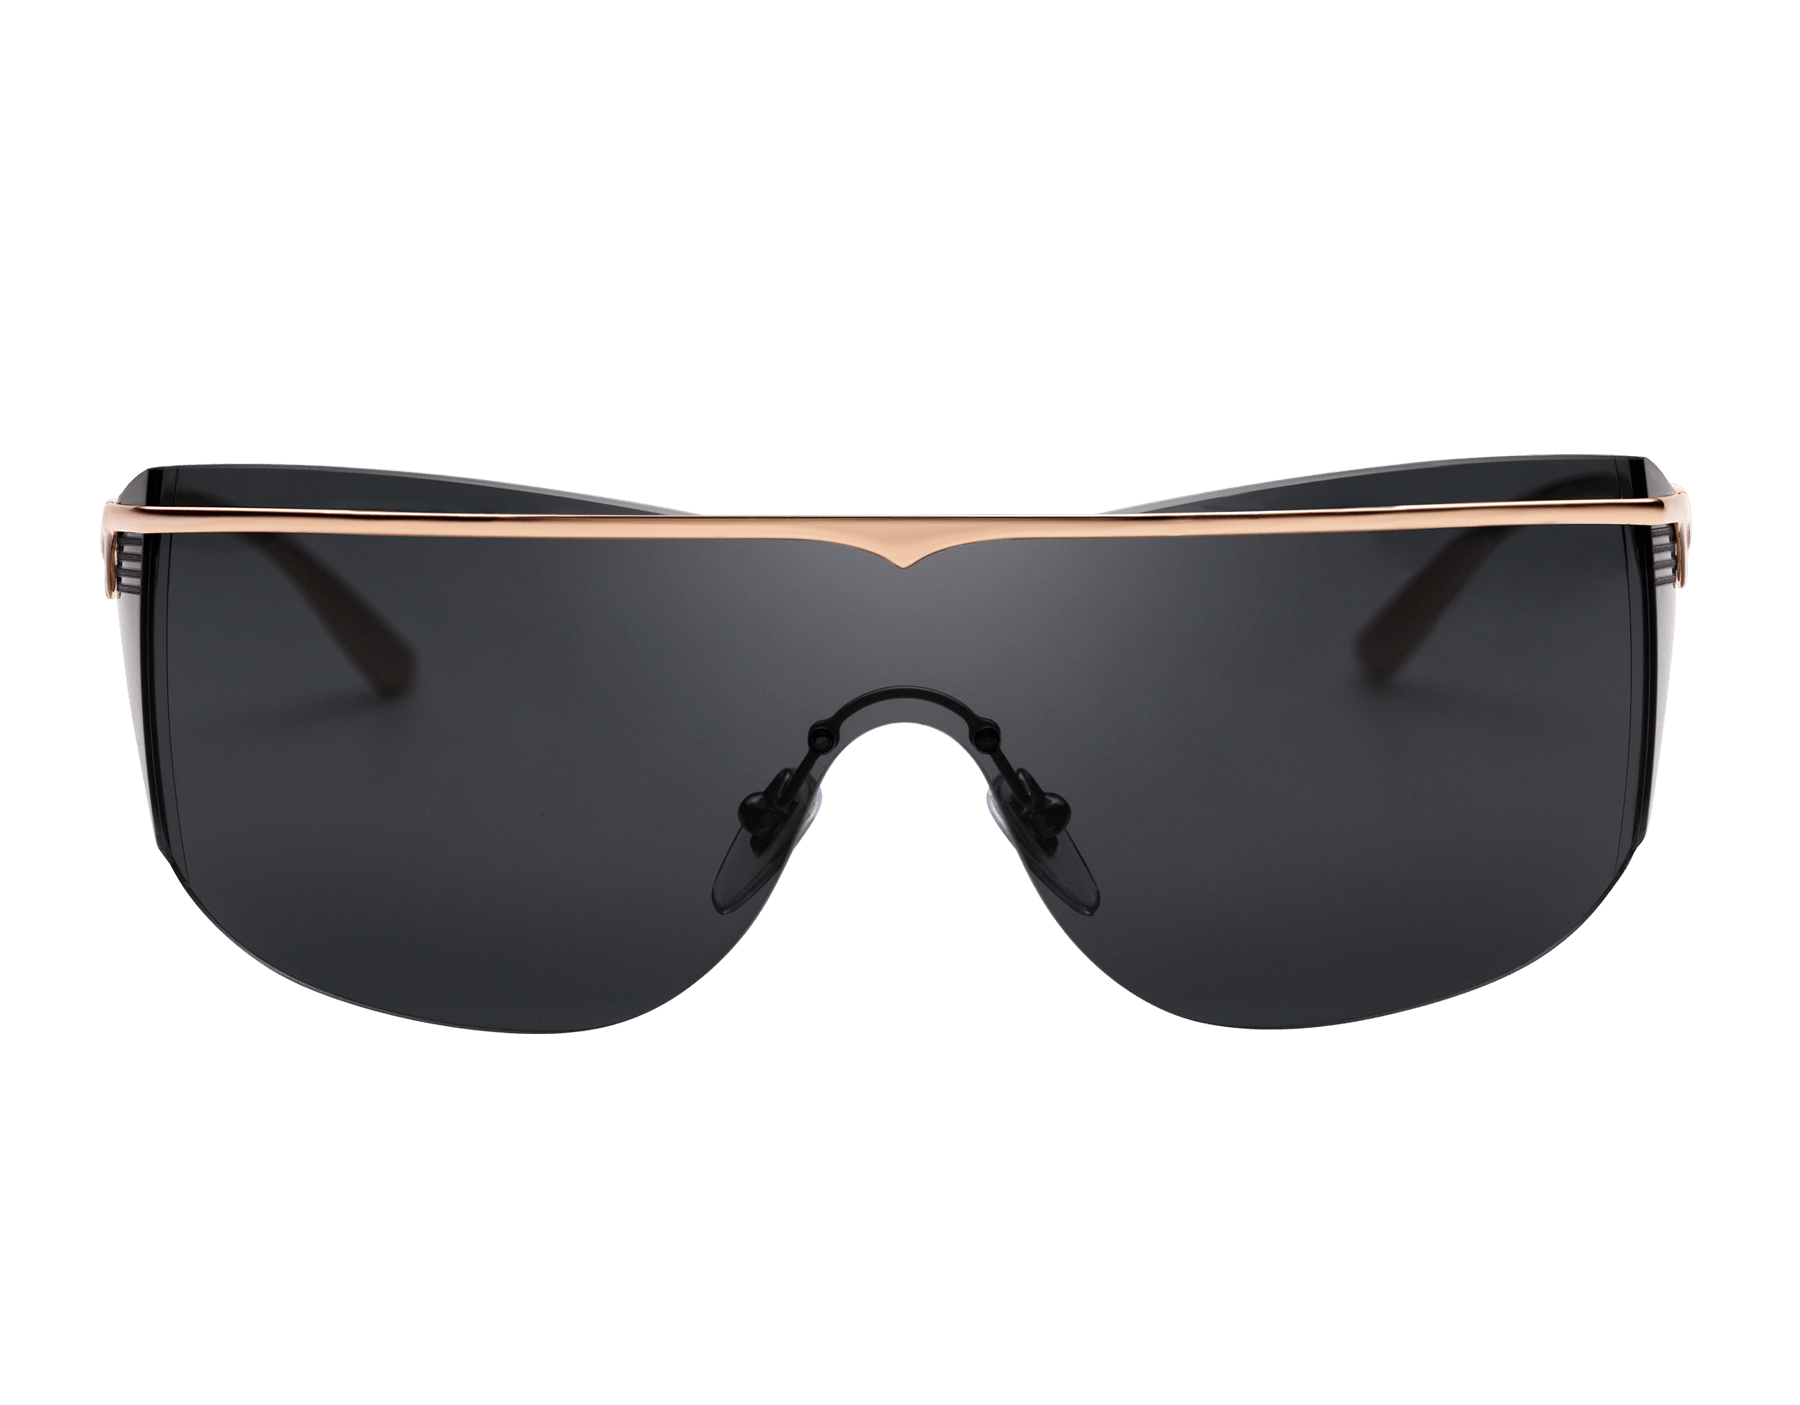 Bulgari B.zero1 B.supercurve metal shield sunglasses. 903964 image 2